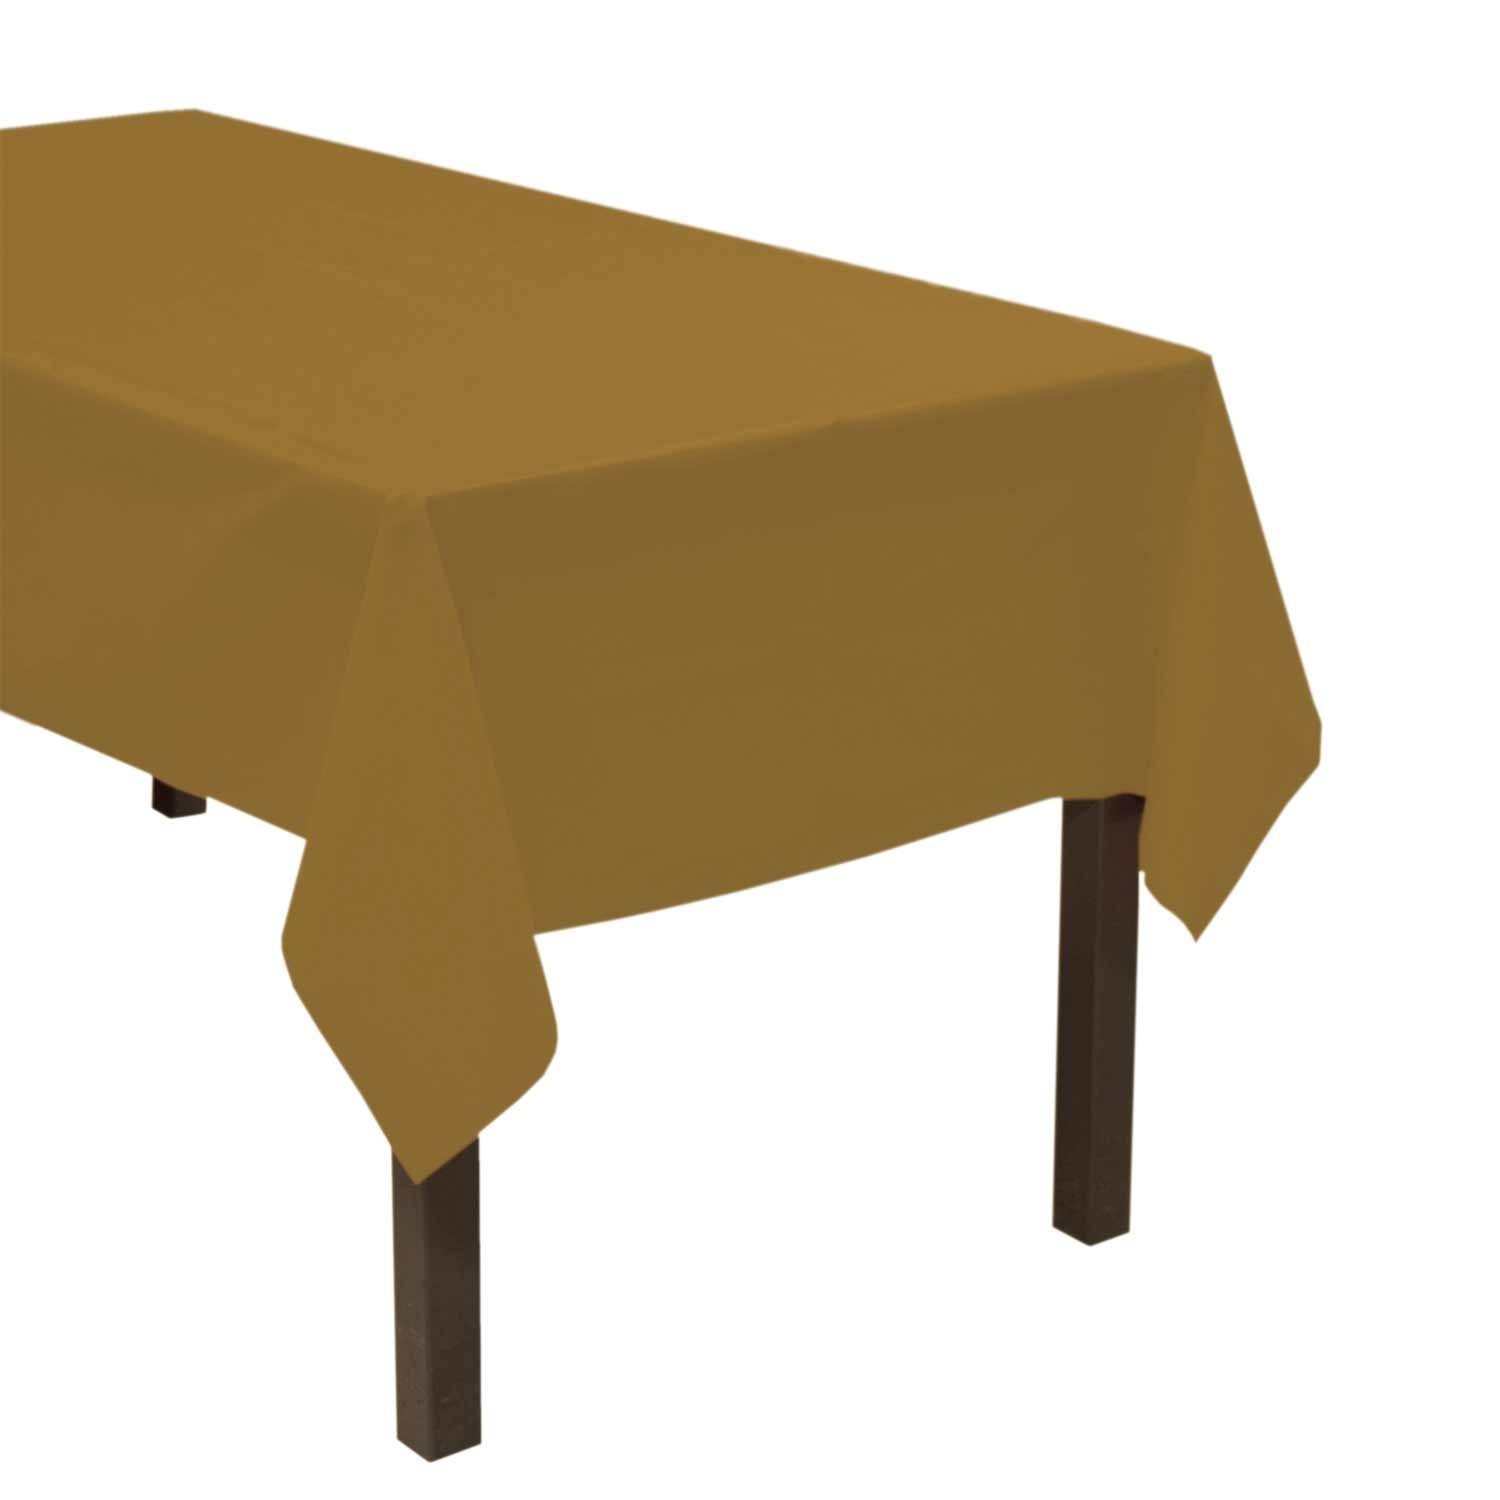 Party Essentials ValuMost Plastic Table Cover Available in 36 Colors, 54'' x 108'', Metallic Gold